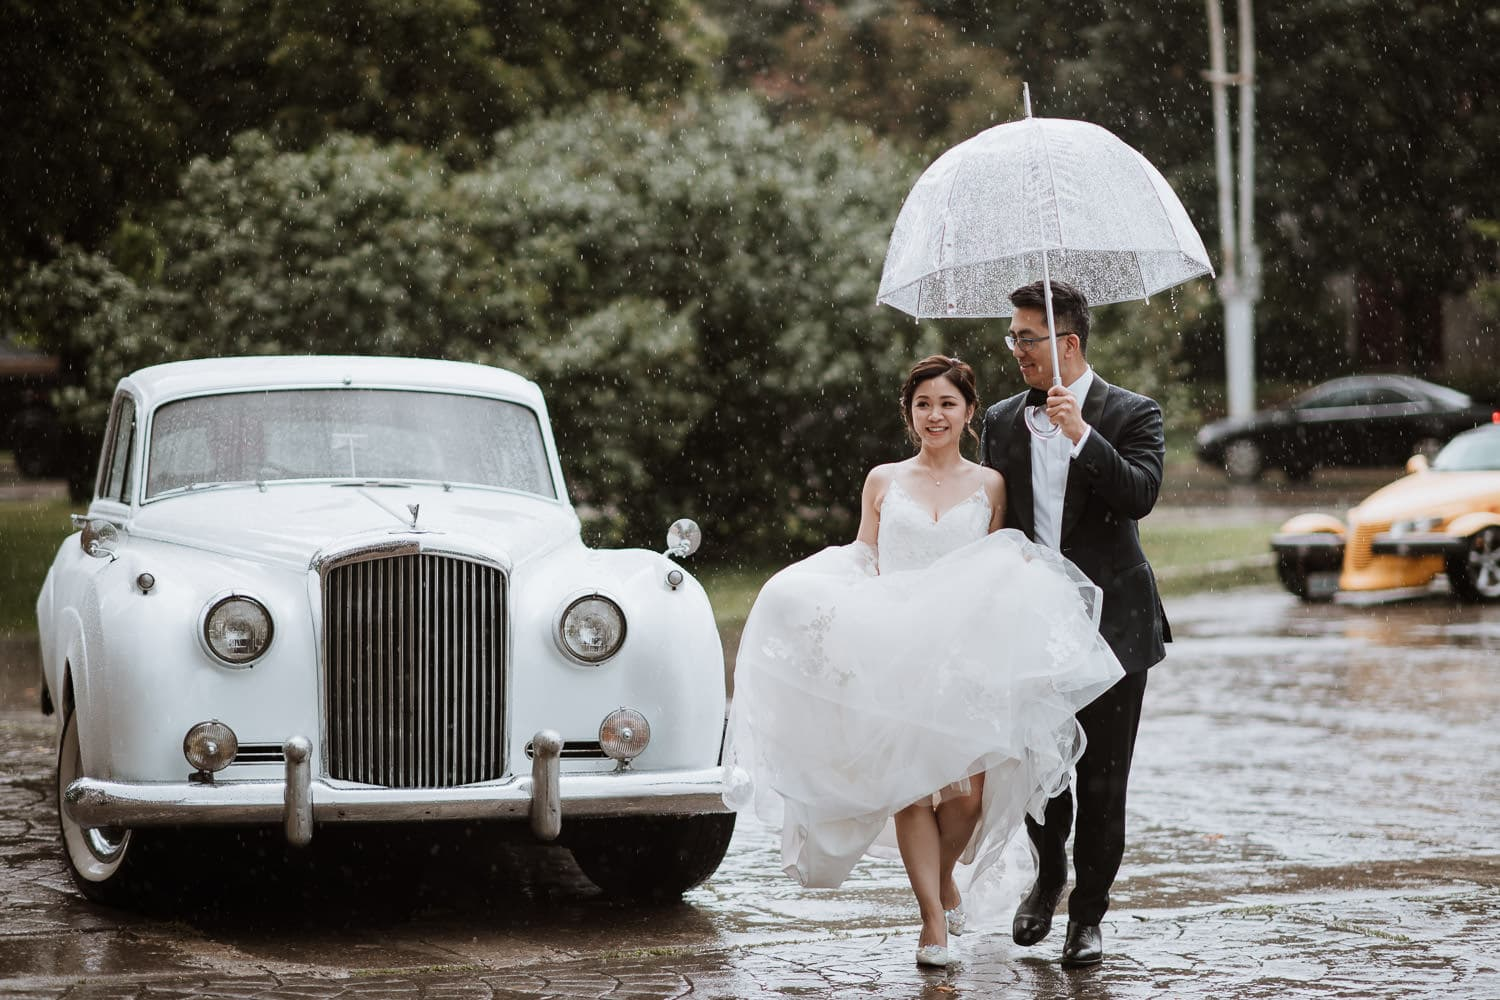 Toronto Liberty Grand Wedding Photography in the rain